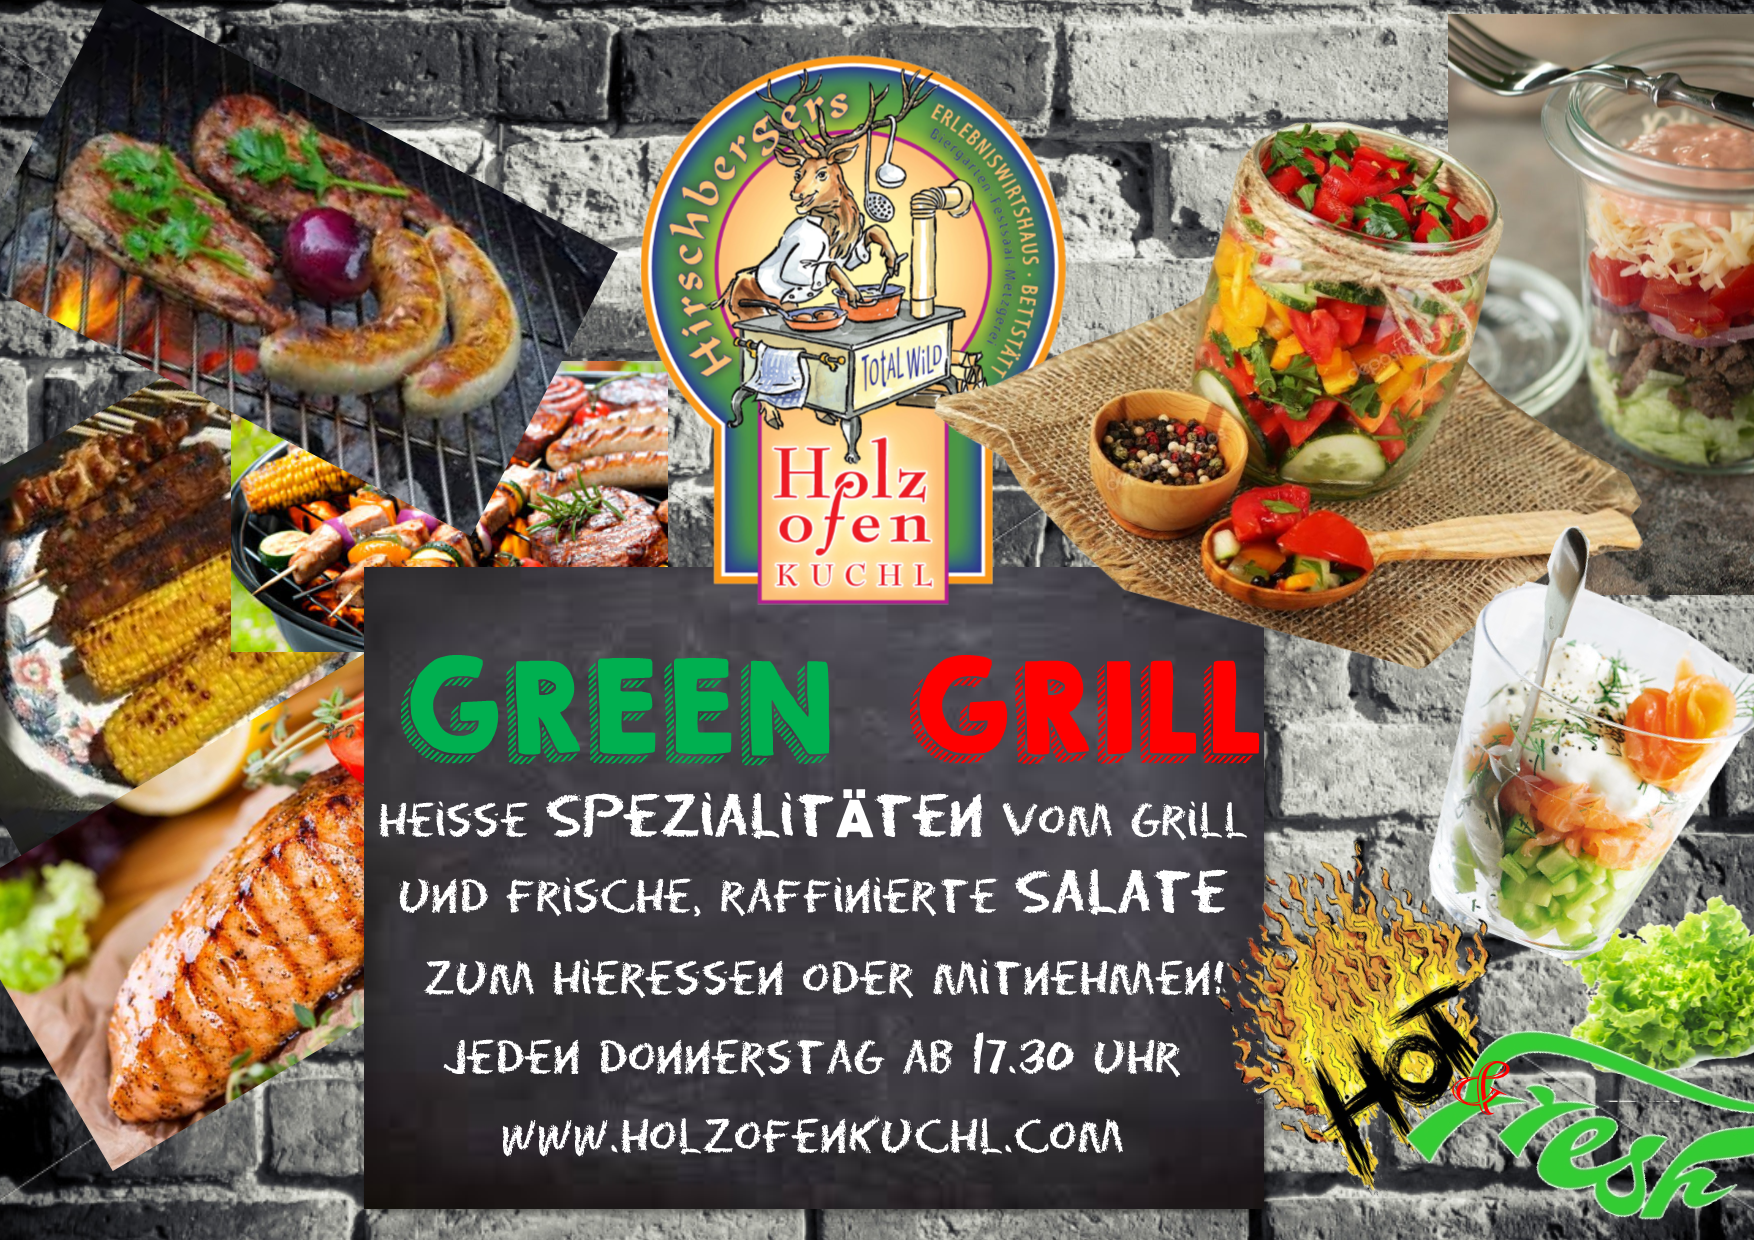 Green Grill - hot and fresh - jeden Donnerstag